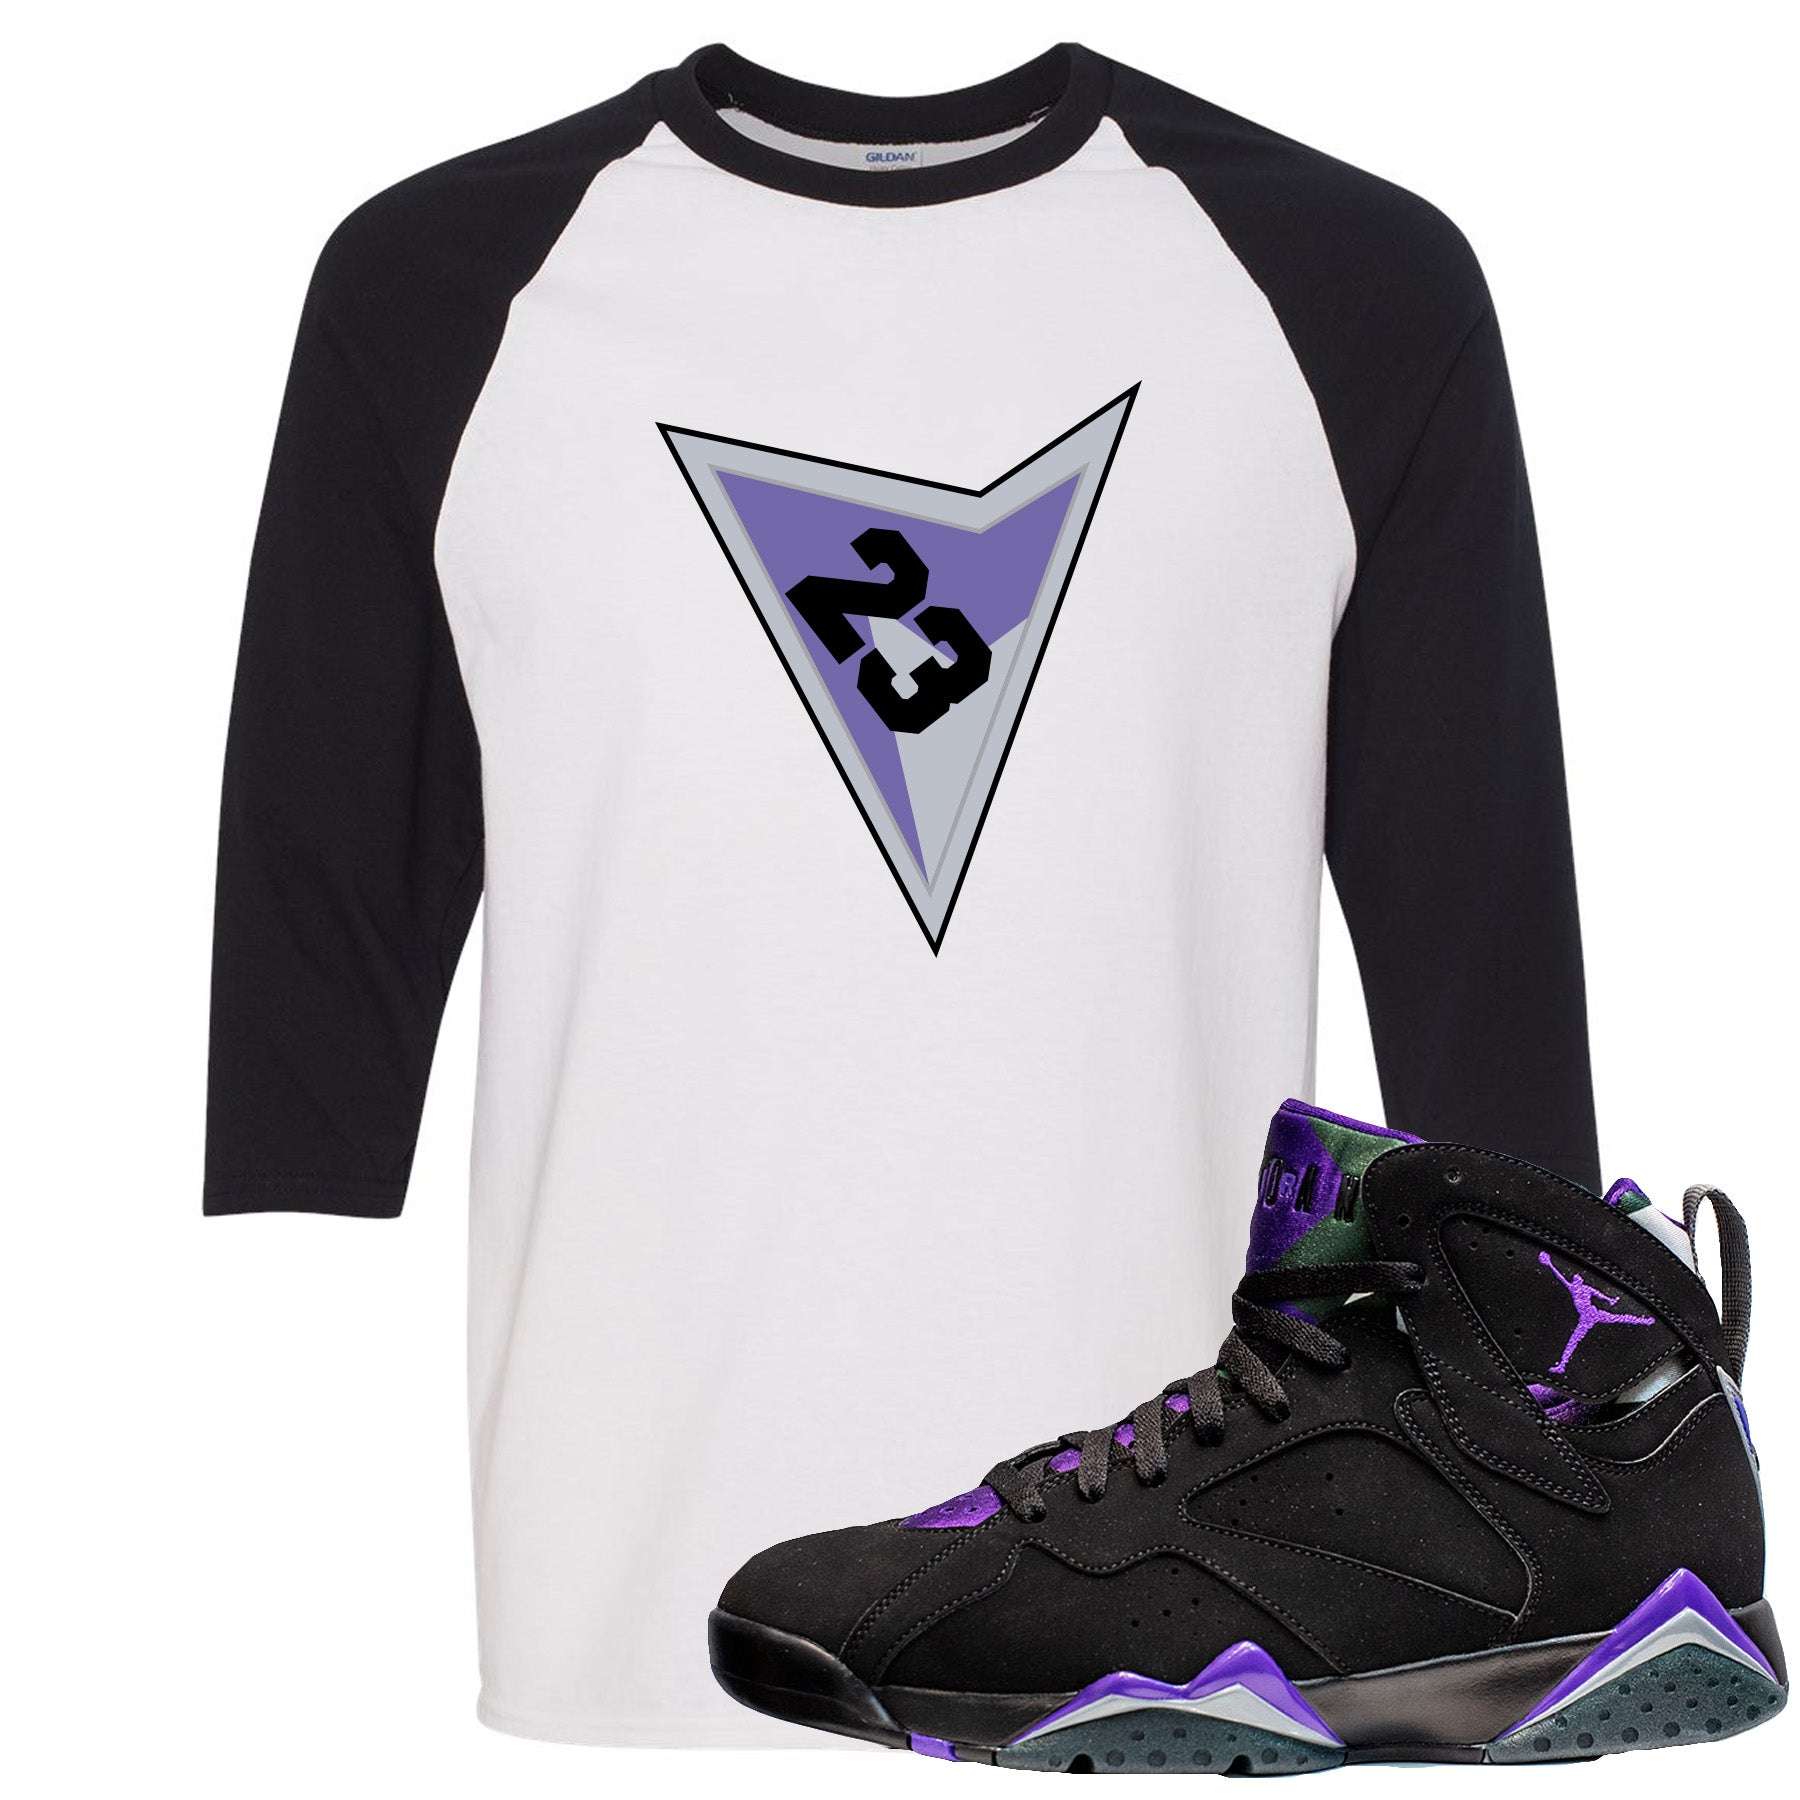 21491d62948 Air Jordan 7 Ray Allen Sneaker Match Triangle Design with 23 White and Black  Raglan T